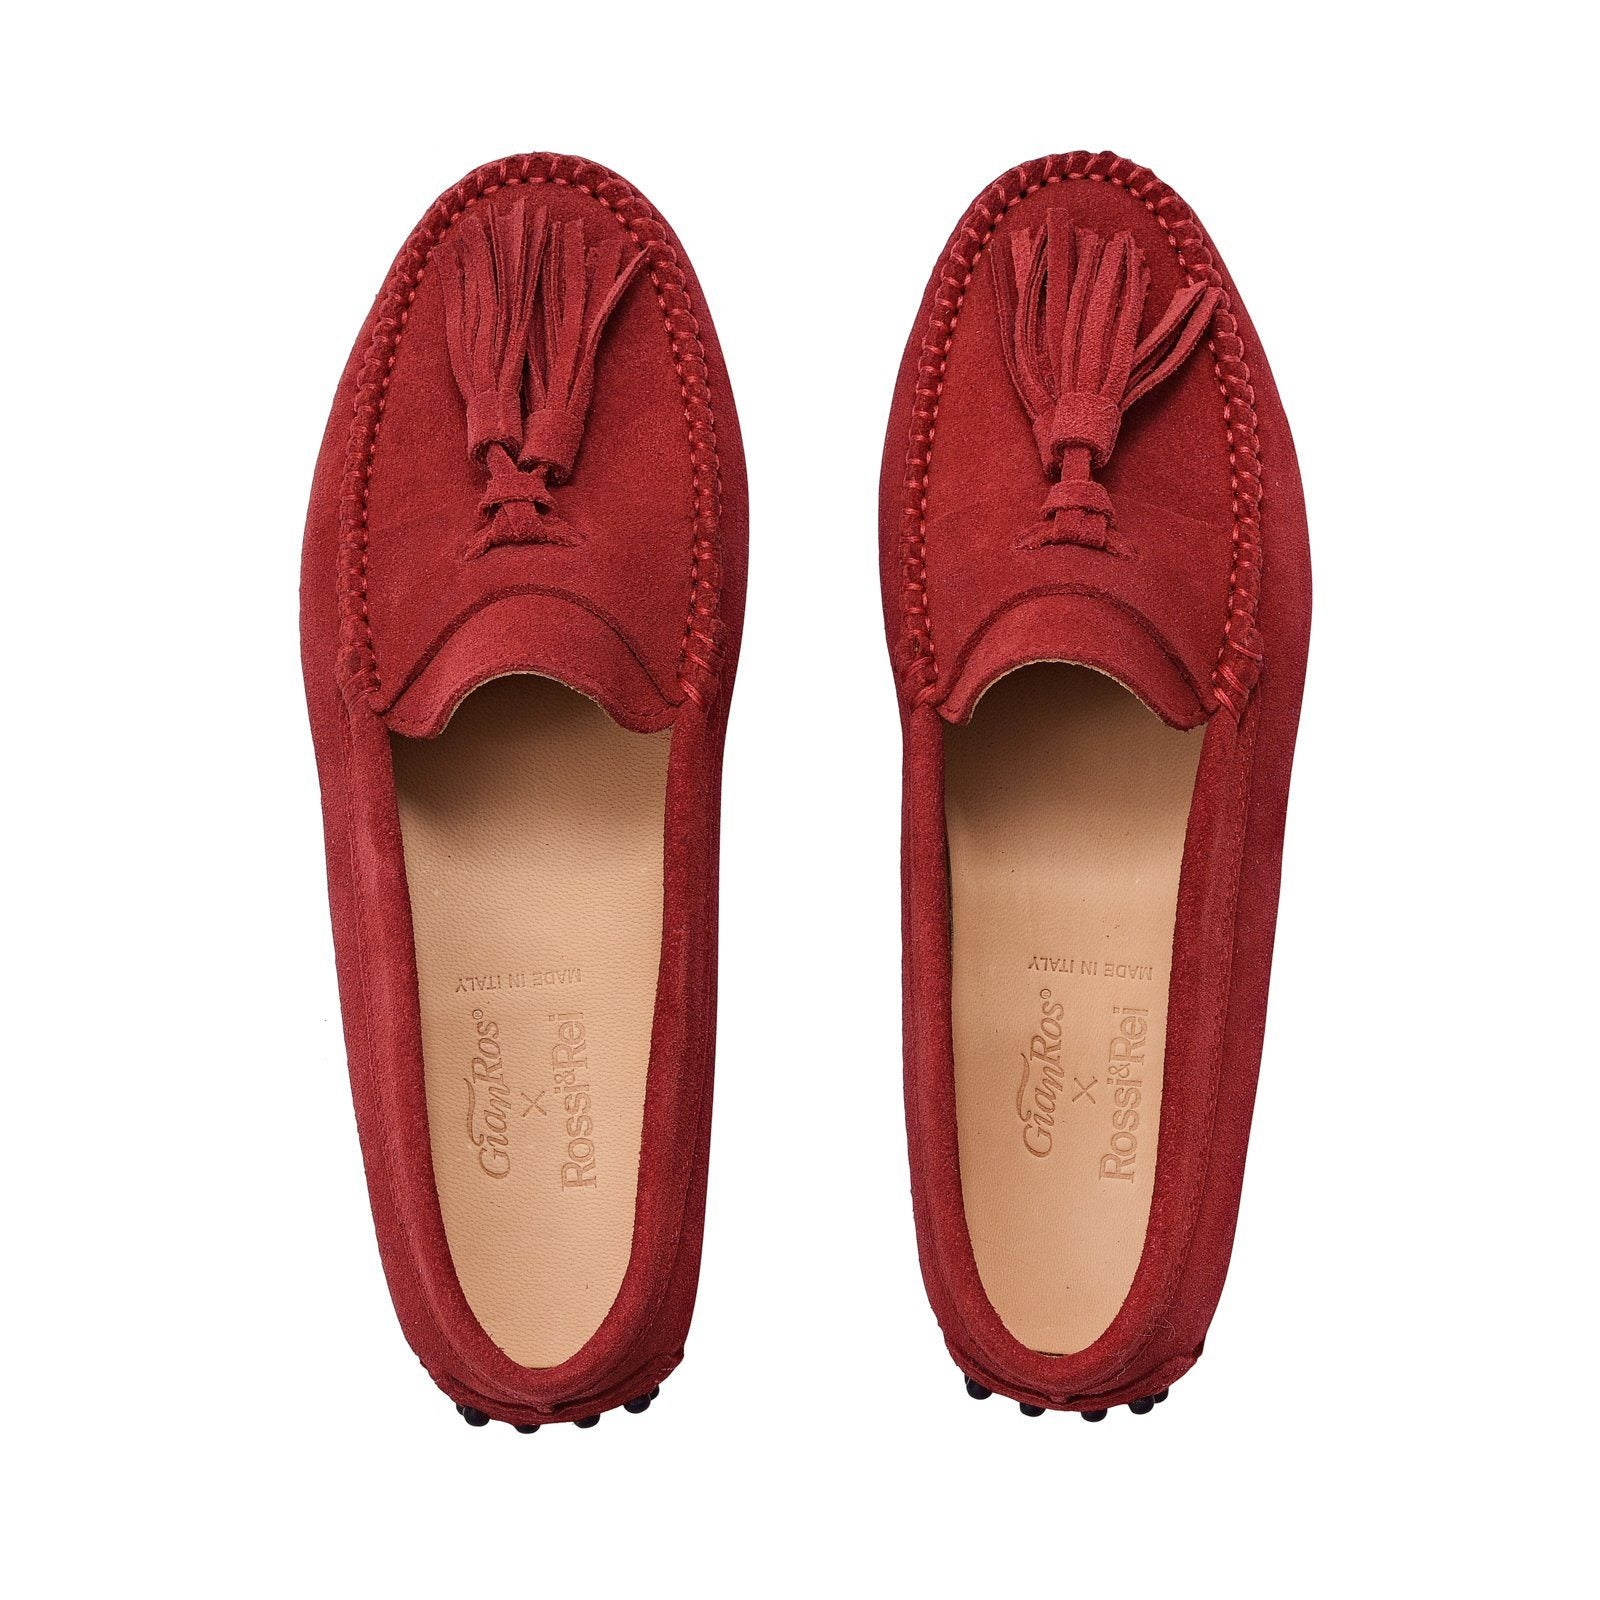 The Tassel — Suede